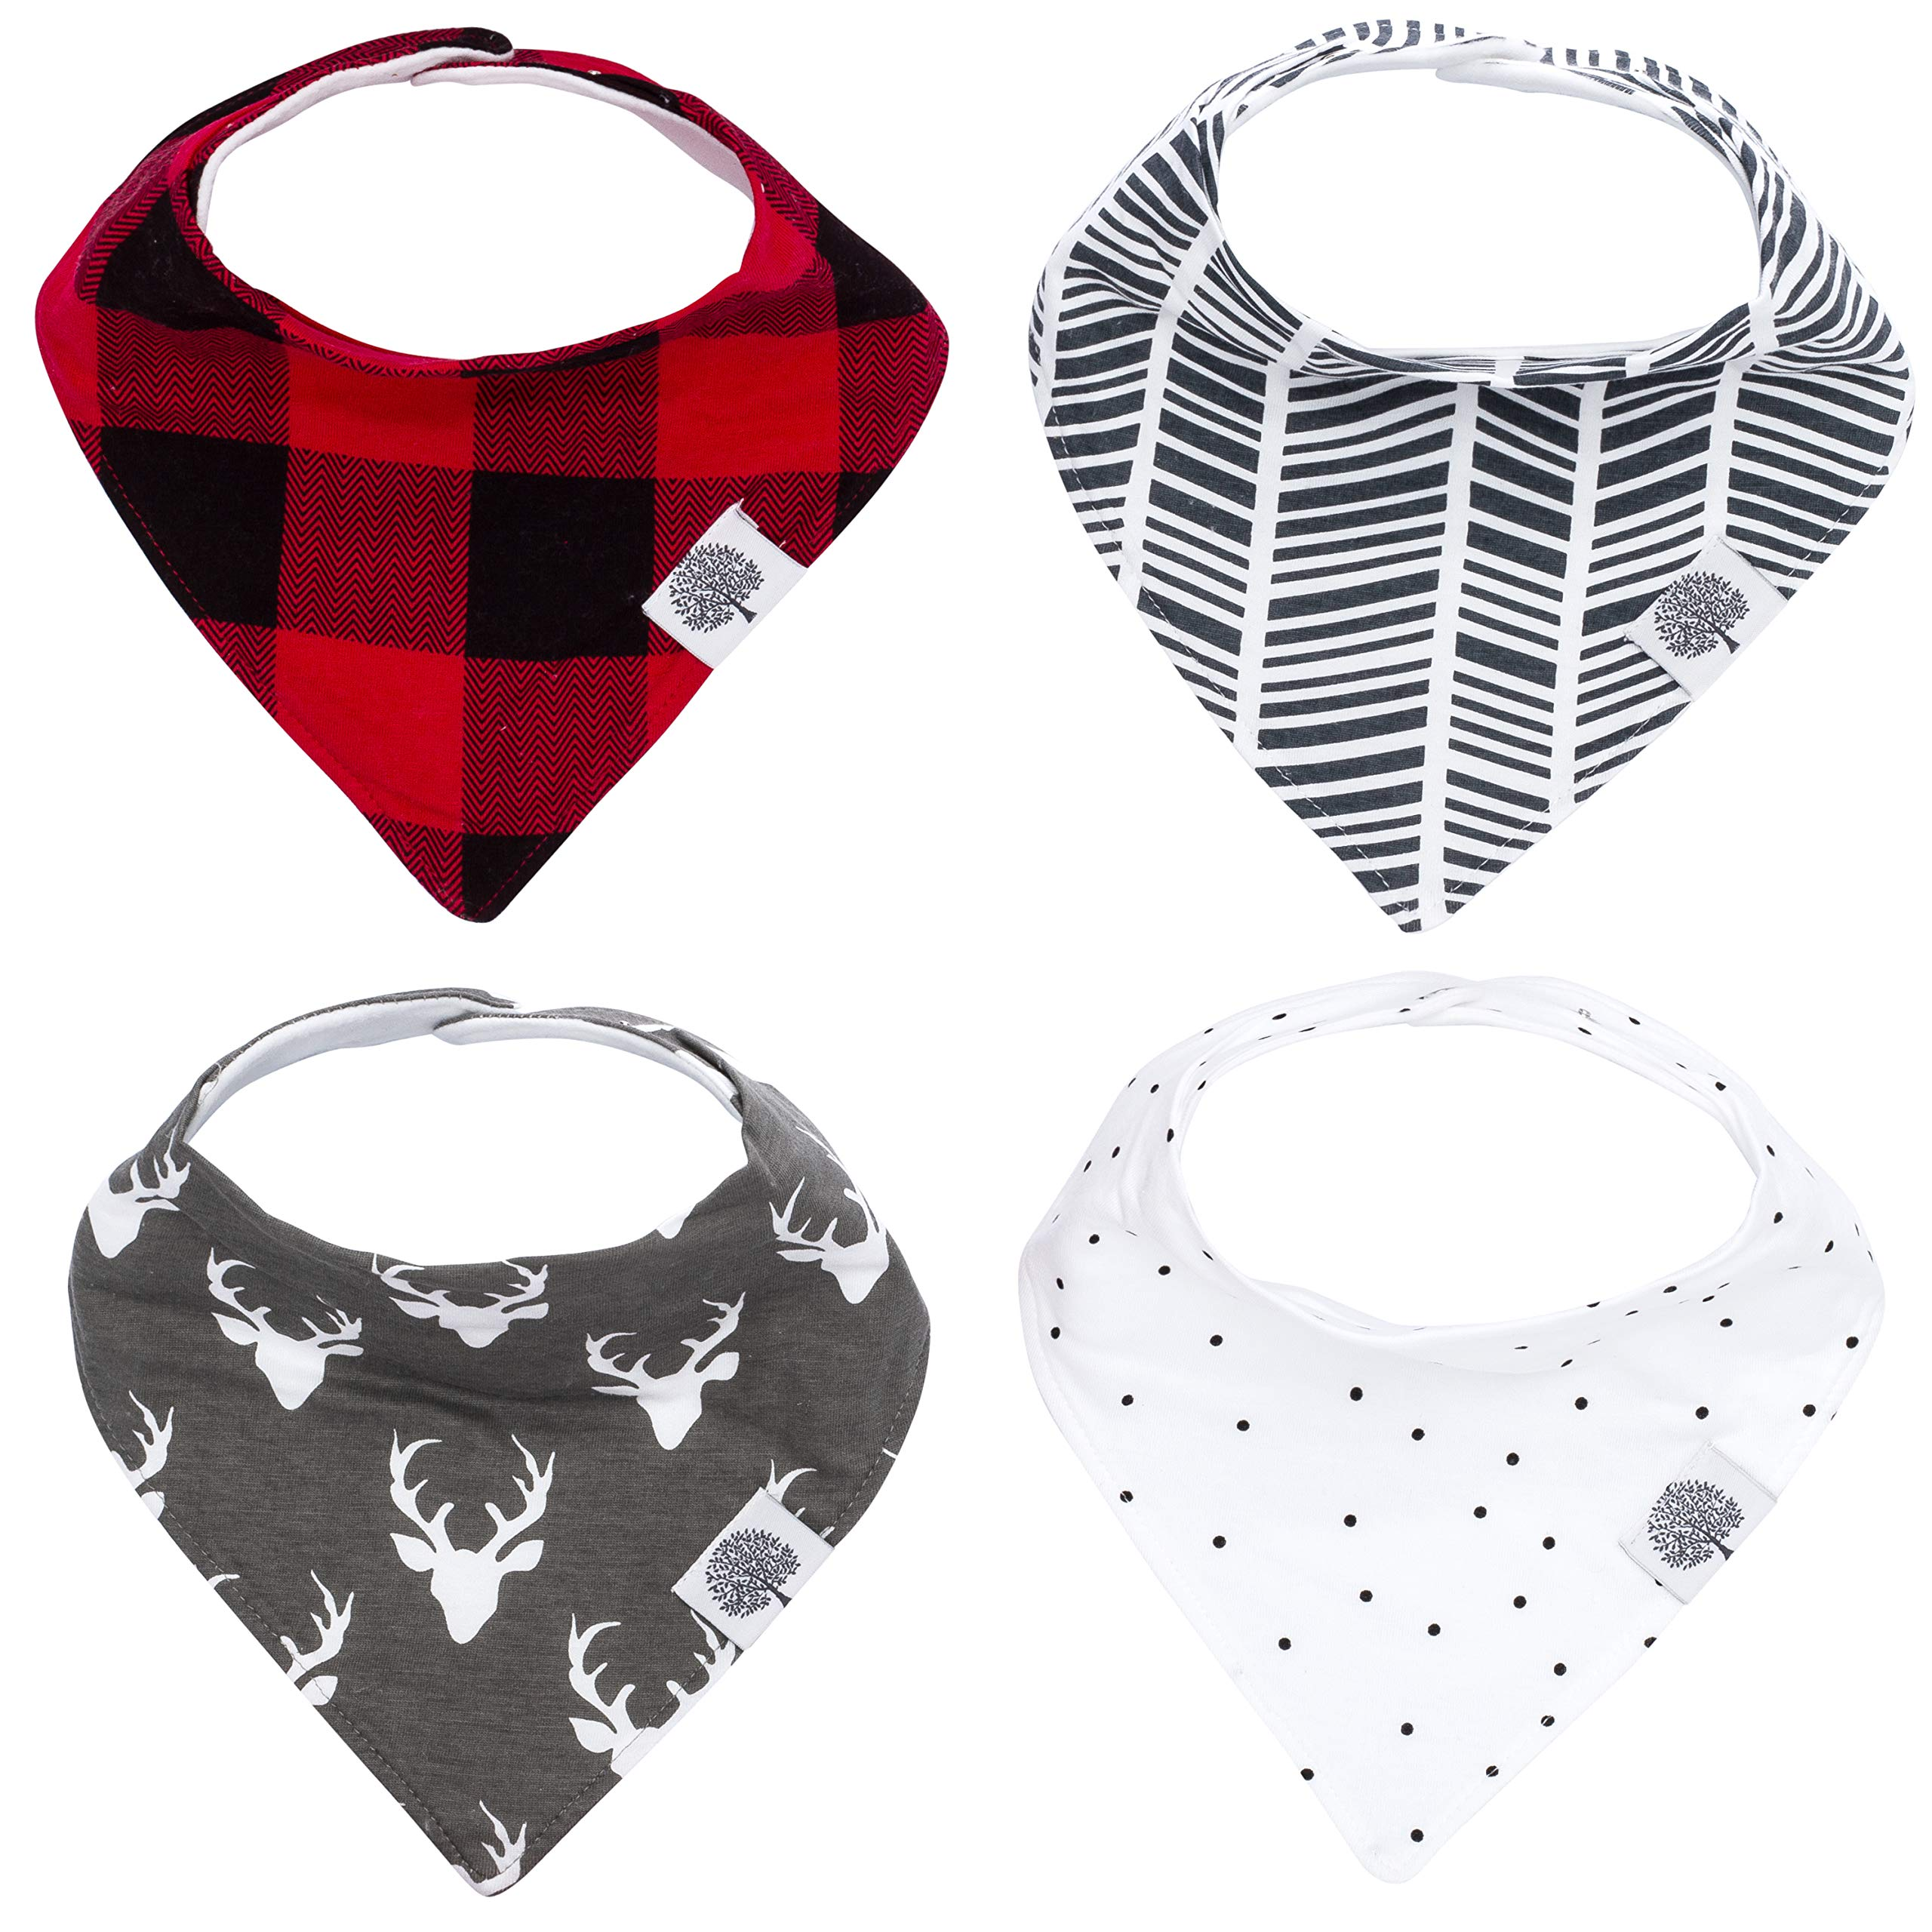 Boys' Baby Clothing 2019 Latest Design Creative Baby Self Feeding Care Bandana Stylish Cotton Blend Baby Bib For Infants Baby Girls For 3 Months To 3 Years